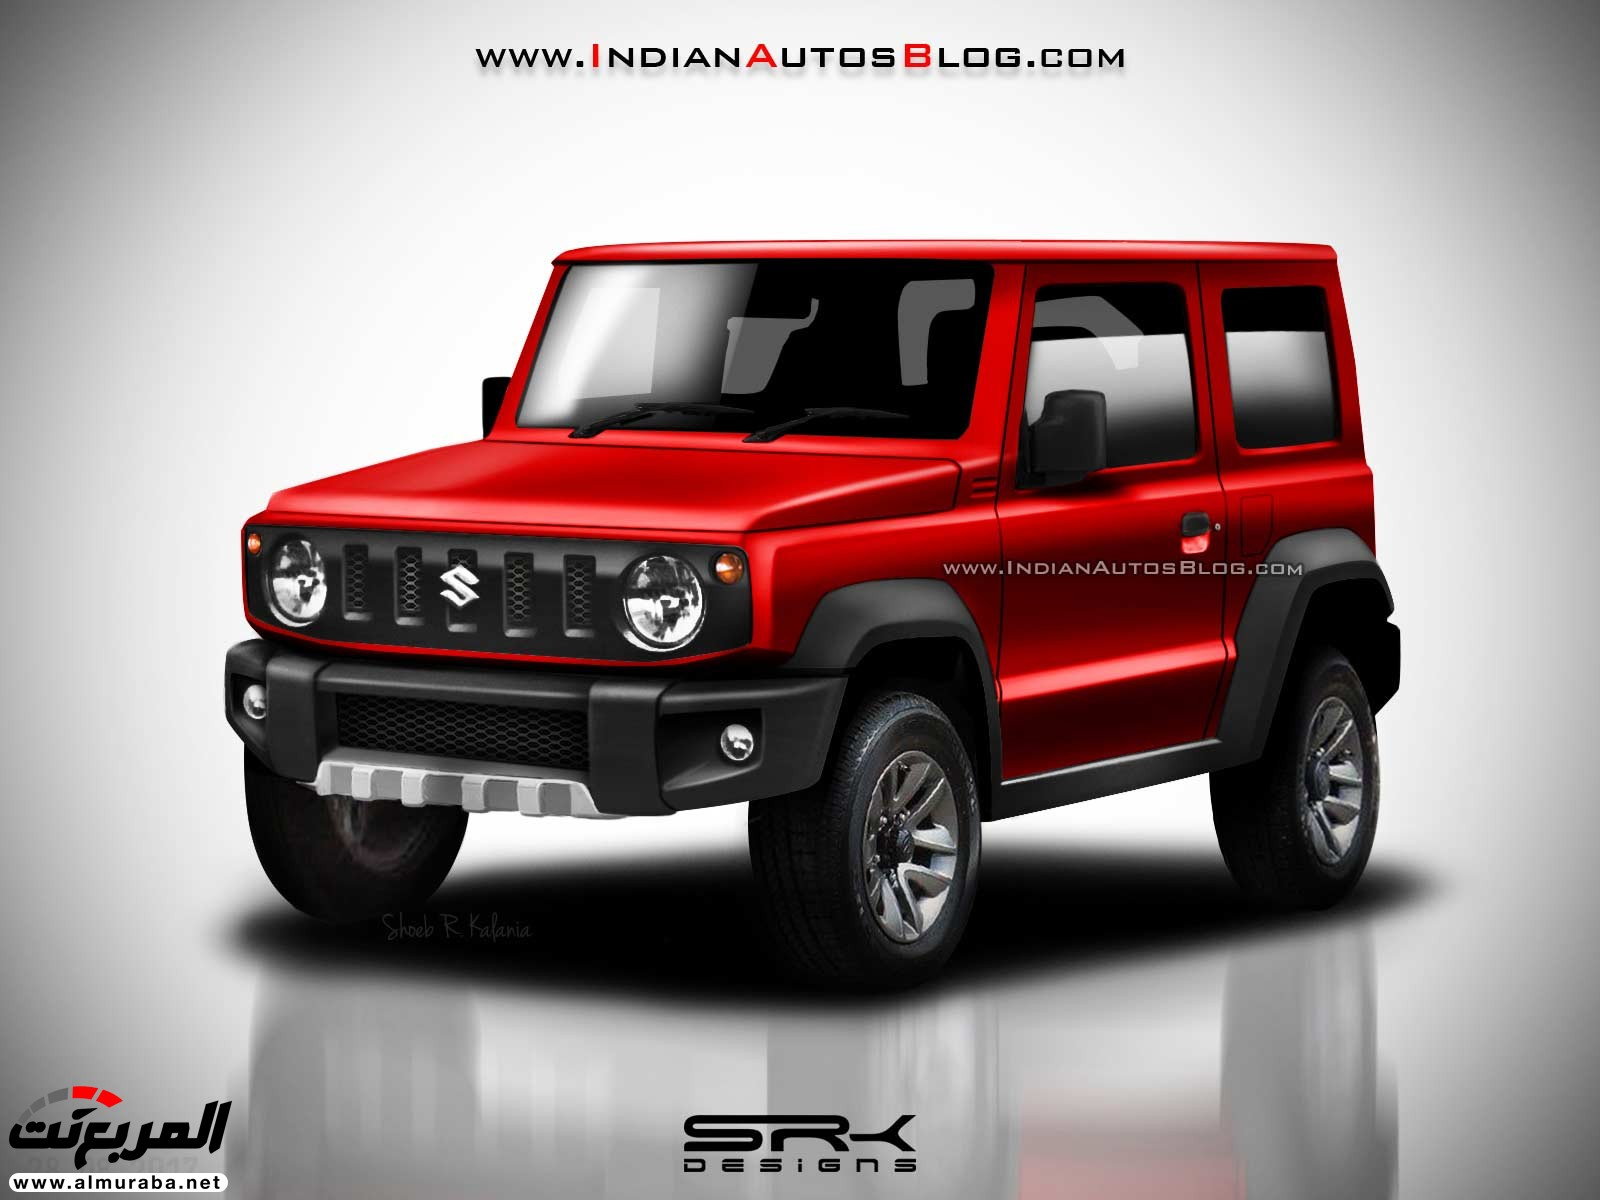 سوزوكي جيمني 2019 تظهر أثناء 2018-Suzuki-Jimny-Rendering-front-three-quarters-red.jpg